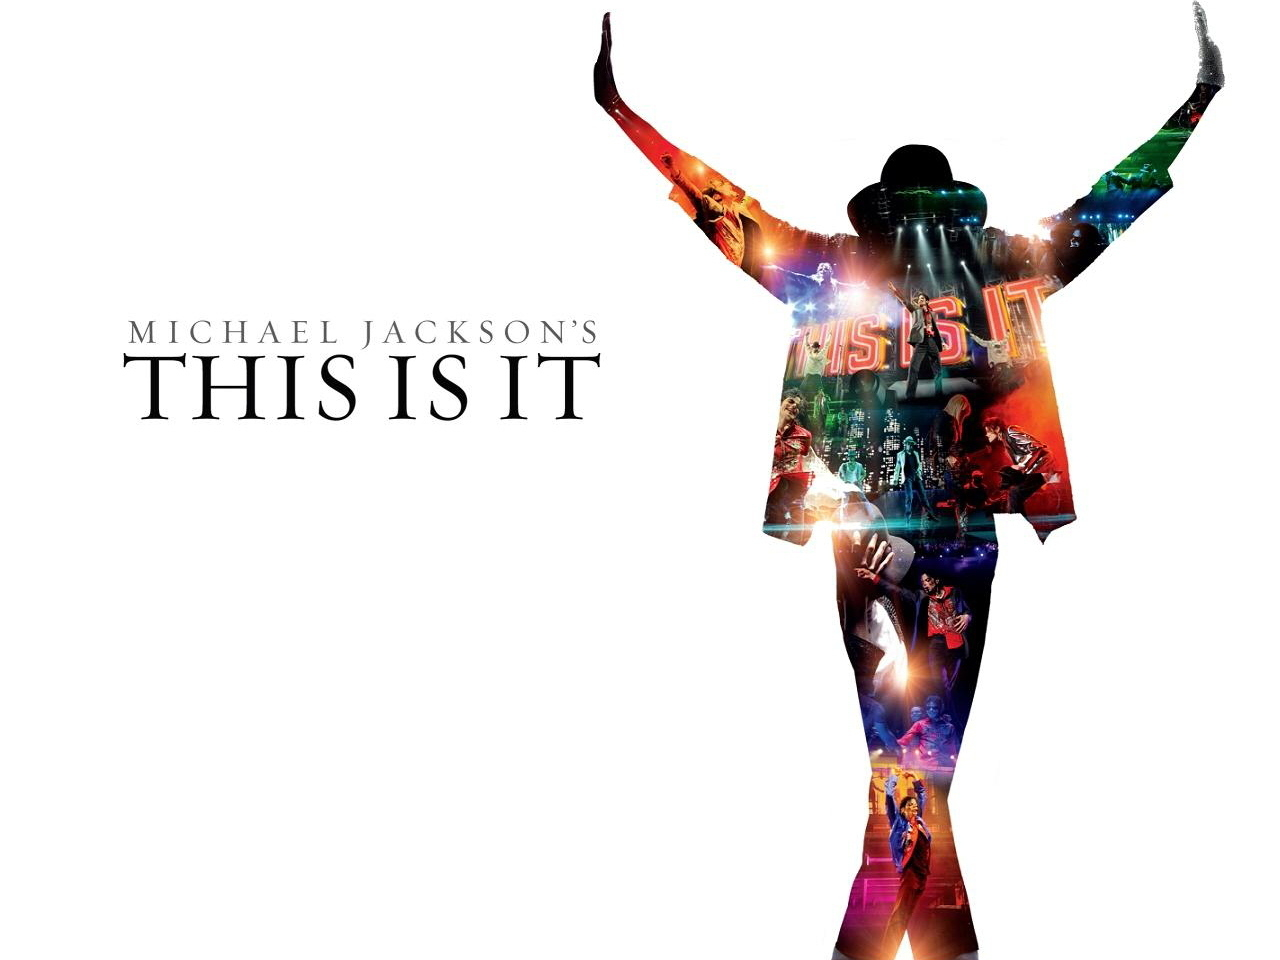 THIS IS IT MJ - Michael Jackson Wallpaper (8842779) - Fanpop